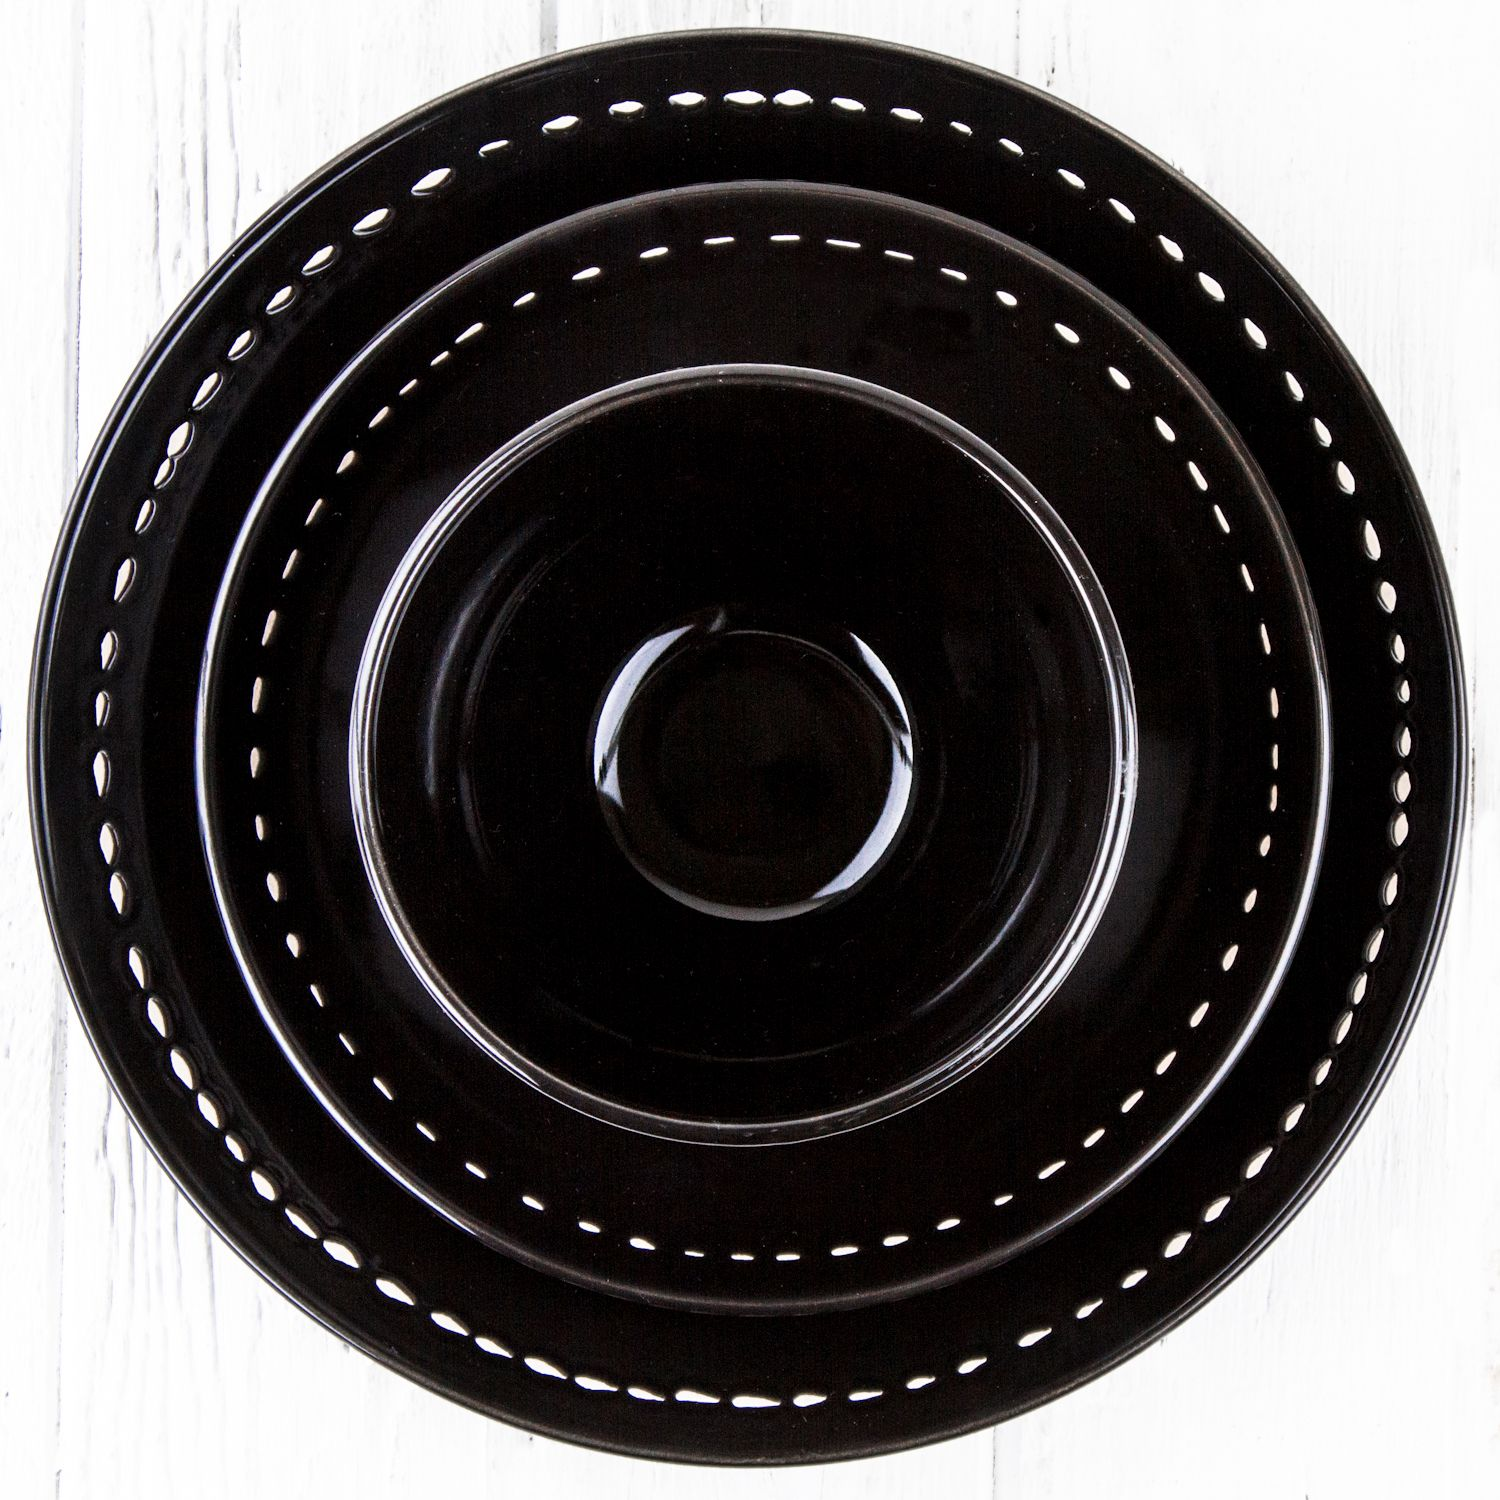 Black Ceramic Alfa Dinnerware - DISHWARE - DINING + KITCHEN